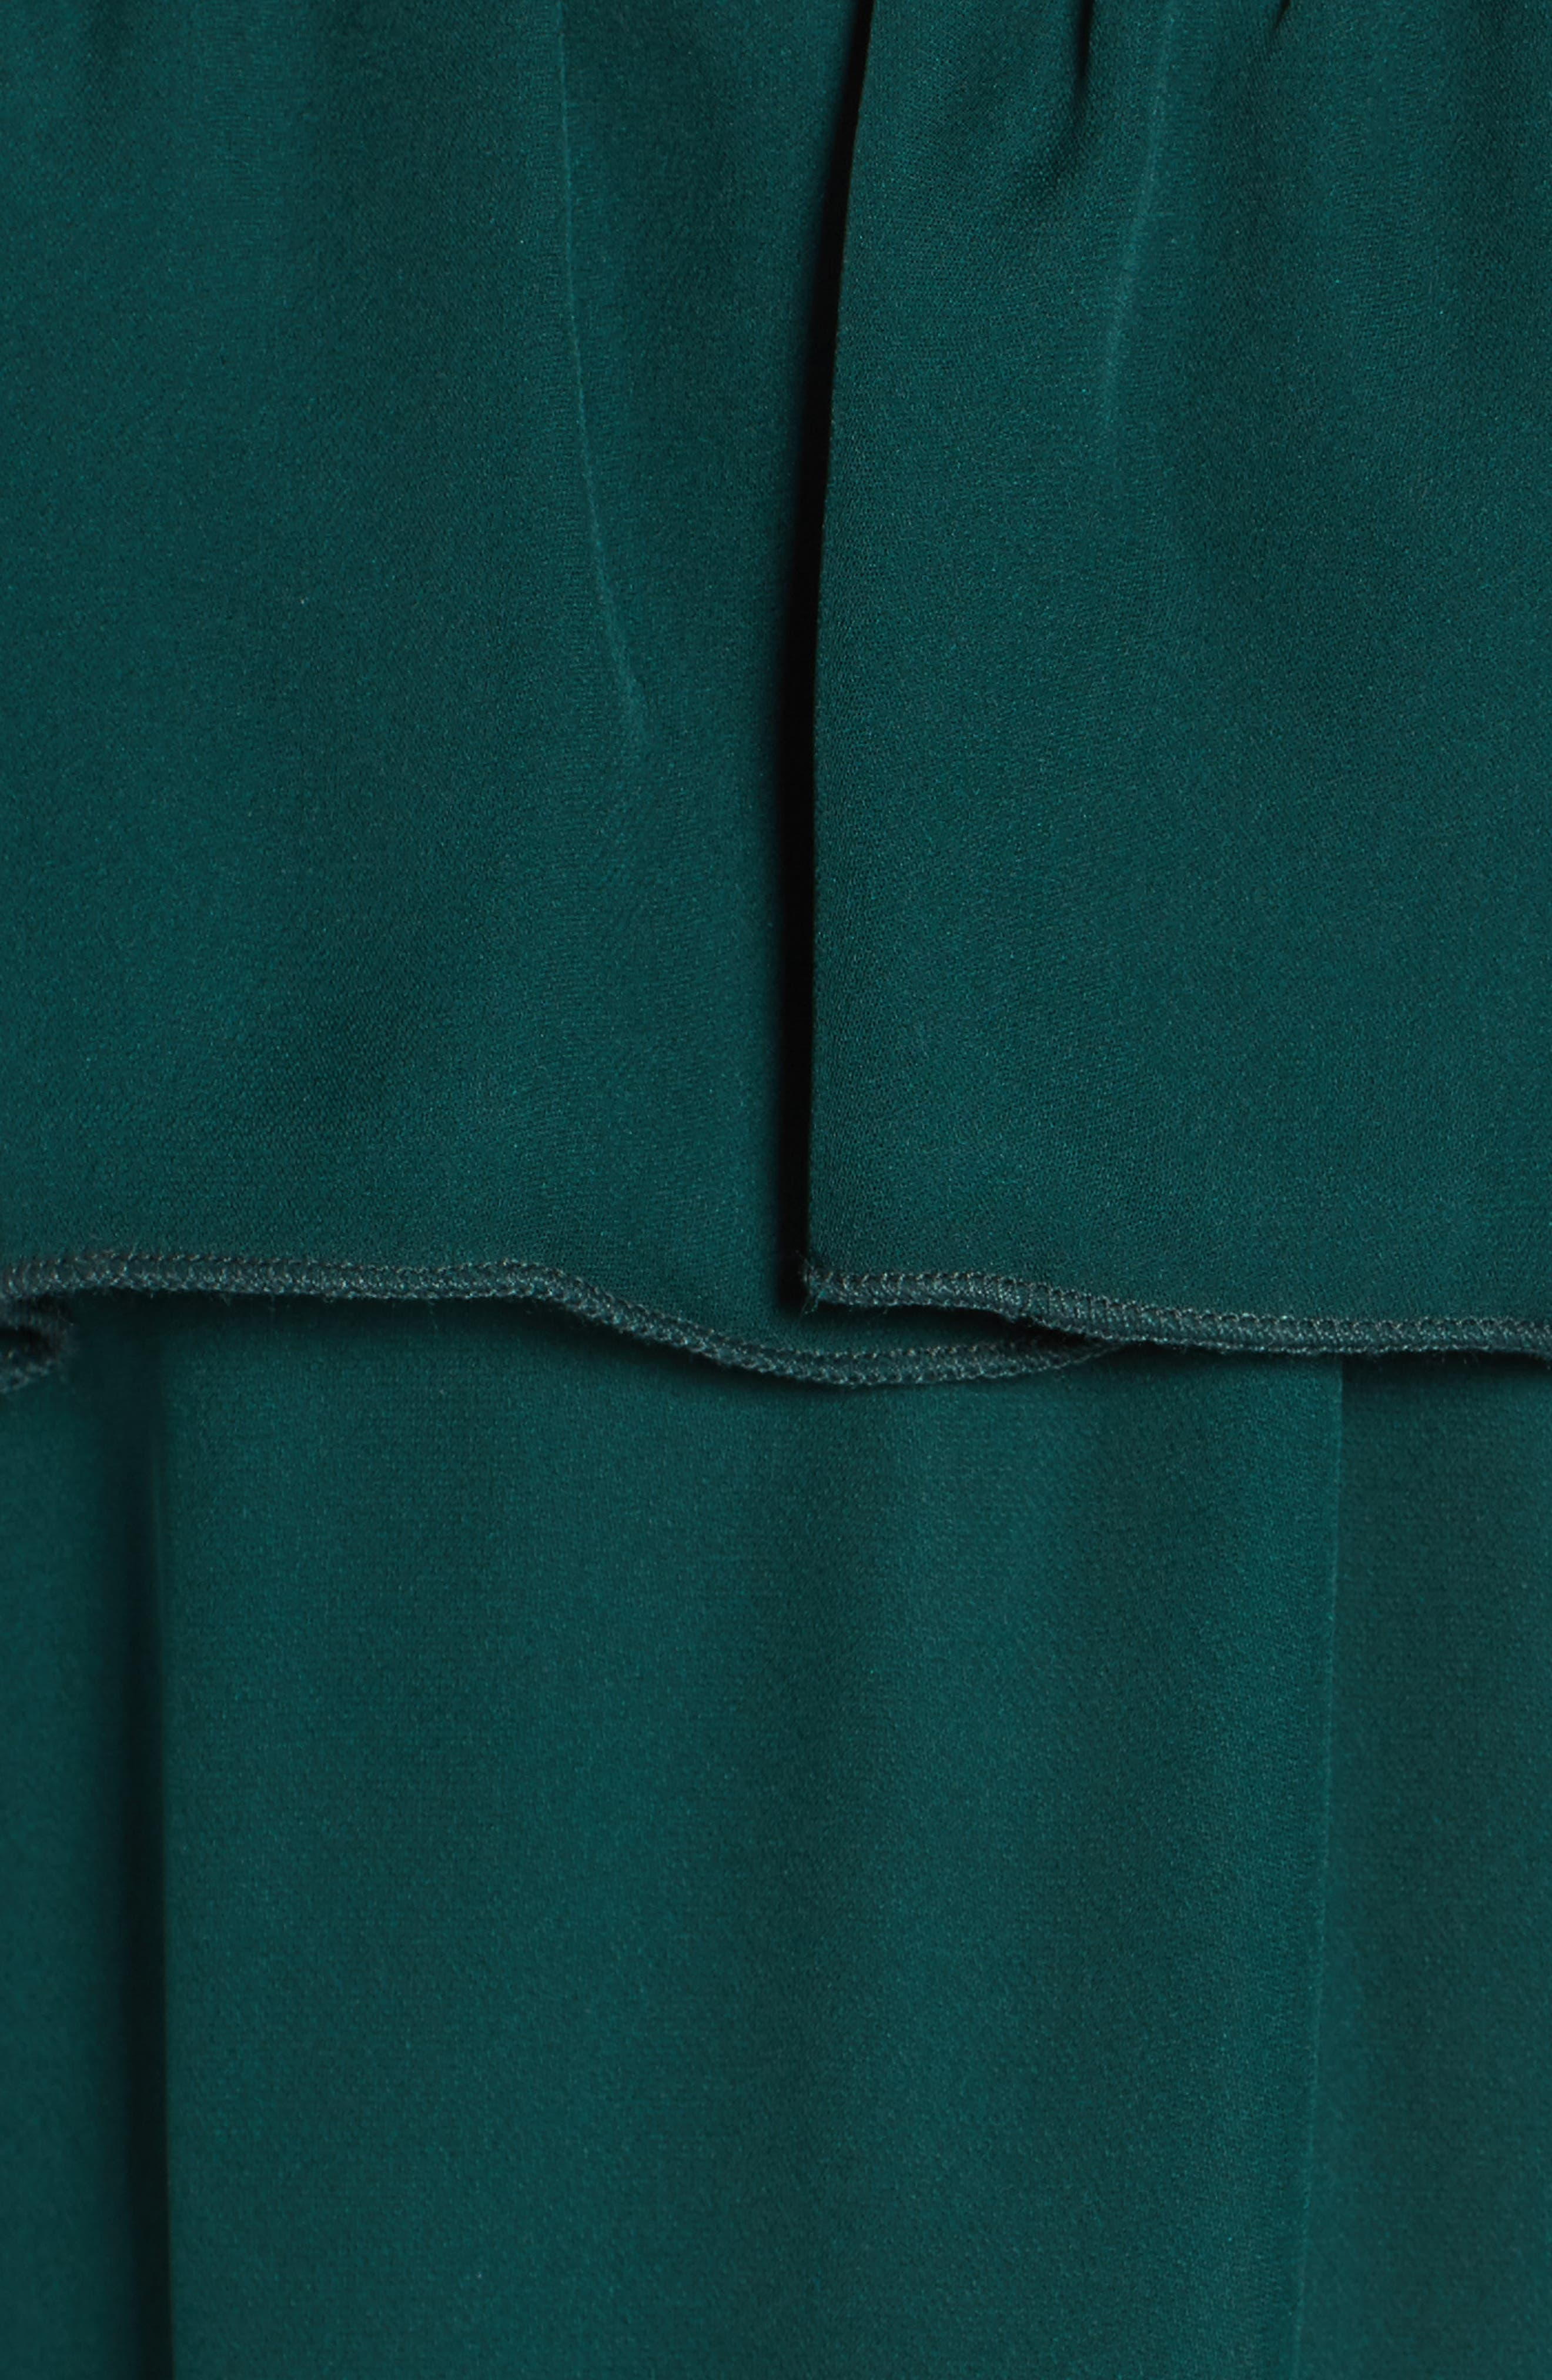 Kennedy Off the Shoulder Blouse,                             Alternate thumbnail 5, color,                             Emerald Green